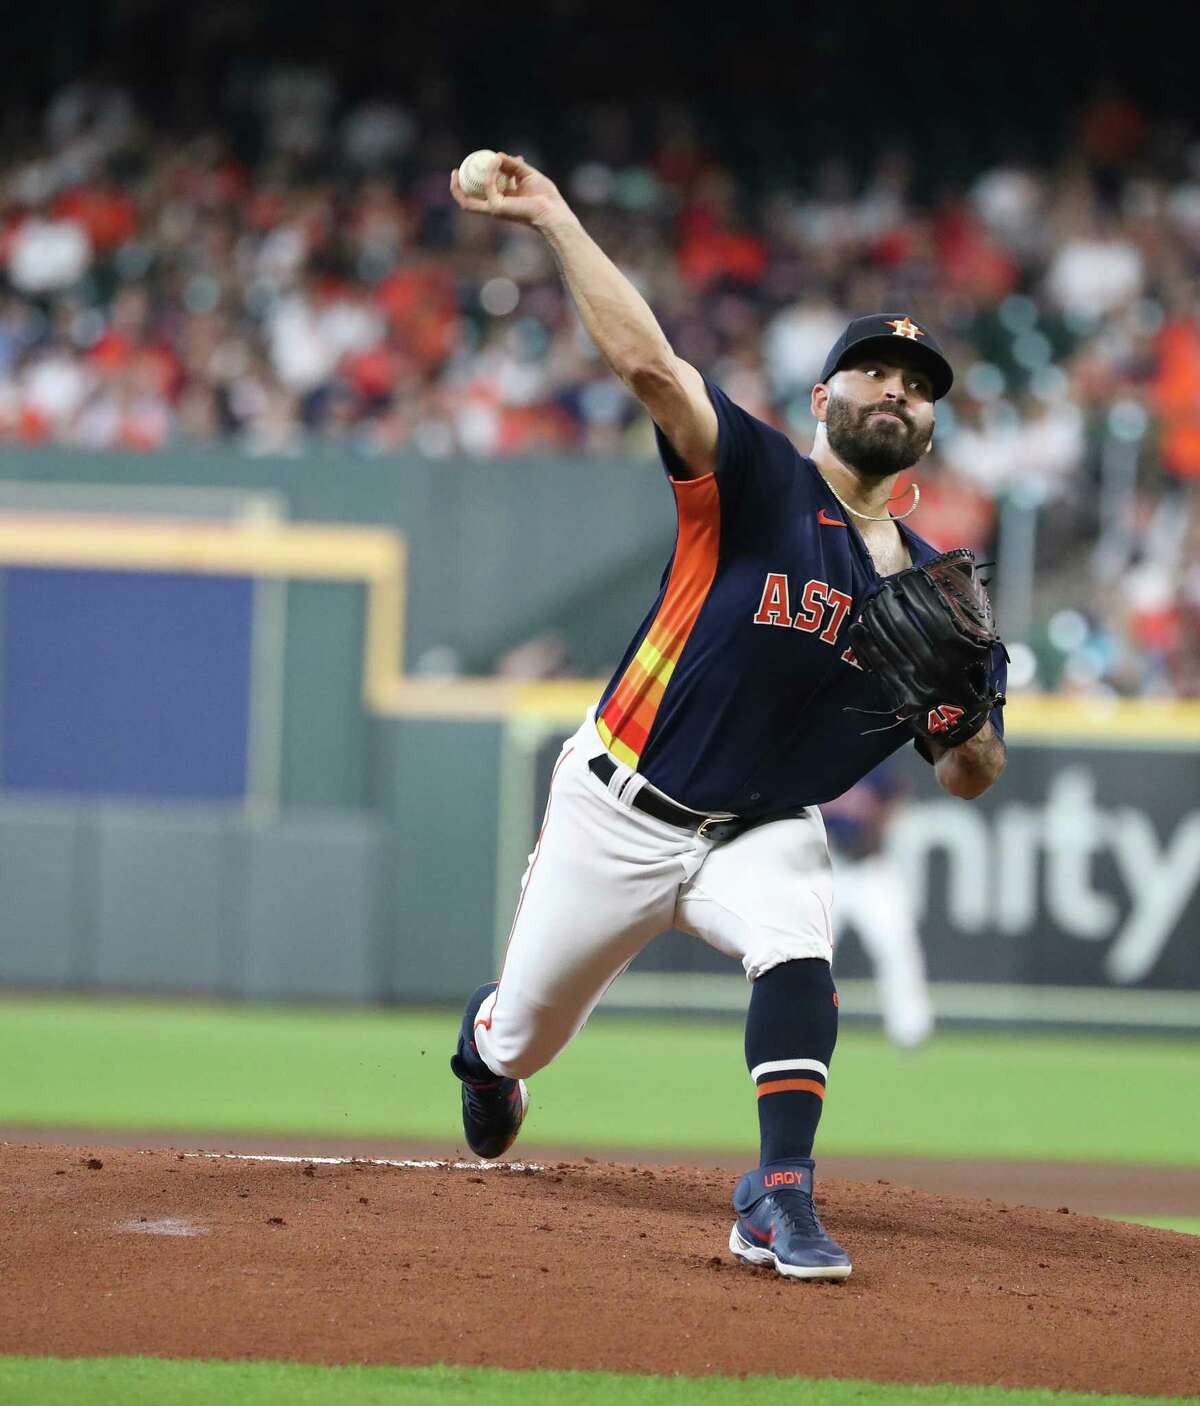 Houston Astros starting pitcher Jose Urquidy (65) pitches to Oakland Athletics Tony Kemp during the first inning of an MLB baseball game at Minute Maid Park, Sunday, October 3, 2021, in Houston.